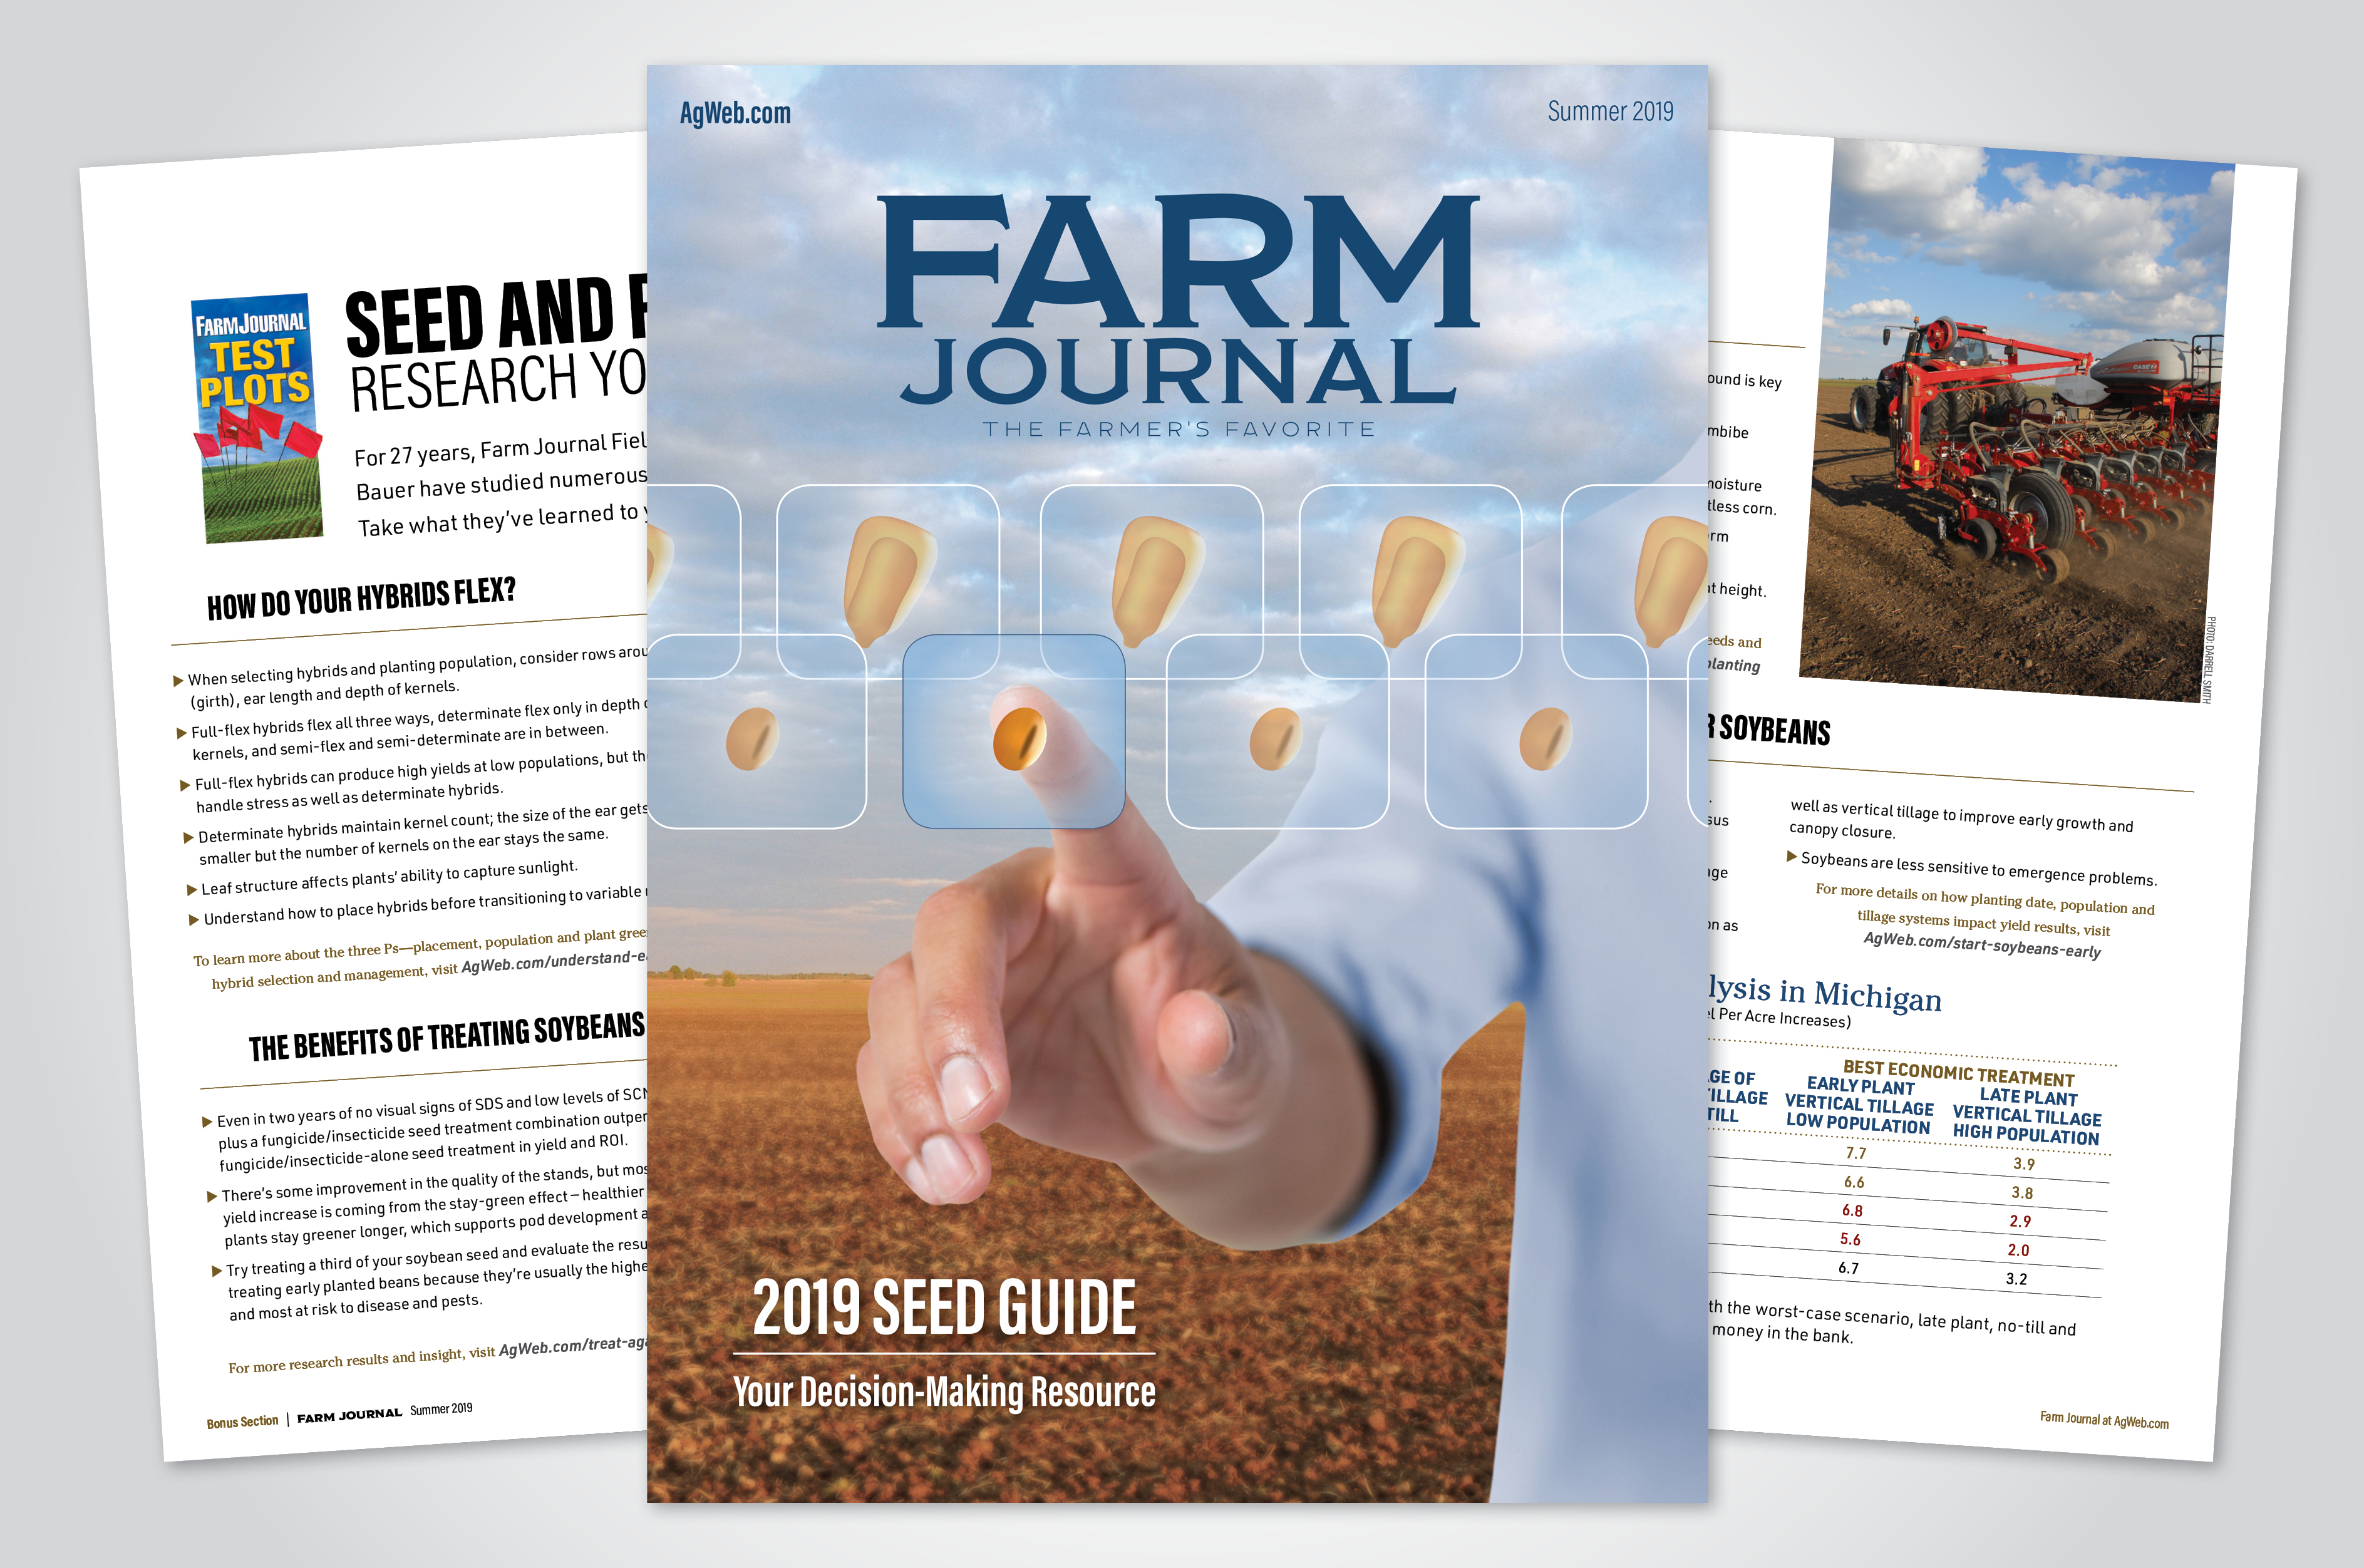 2019 Seed Guide